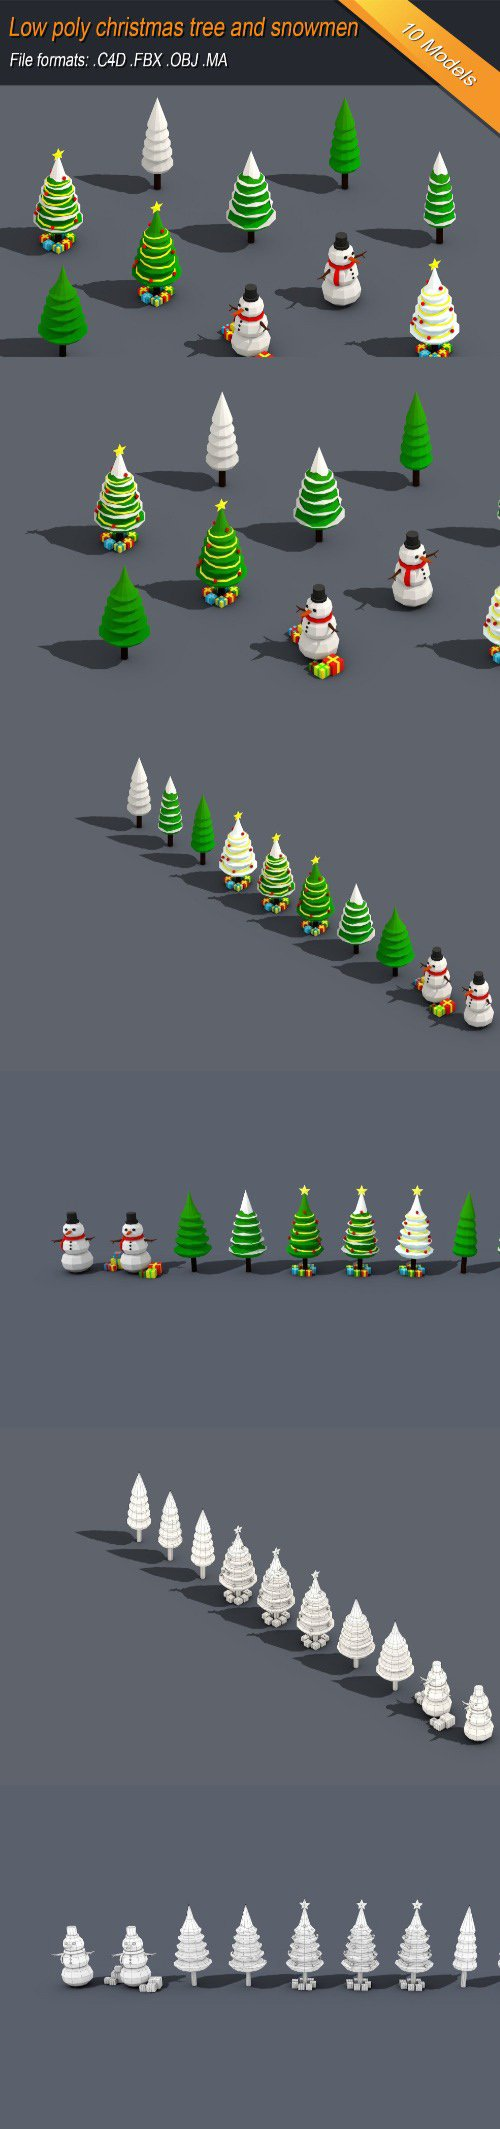 Low Poly Christmas Tree And Snowmen Gift Isometric Low-poly 3D model